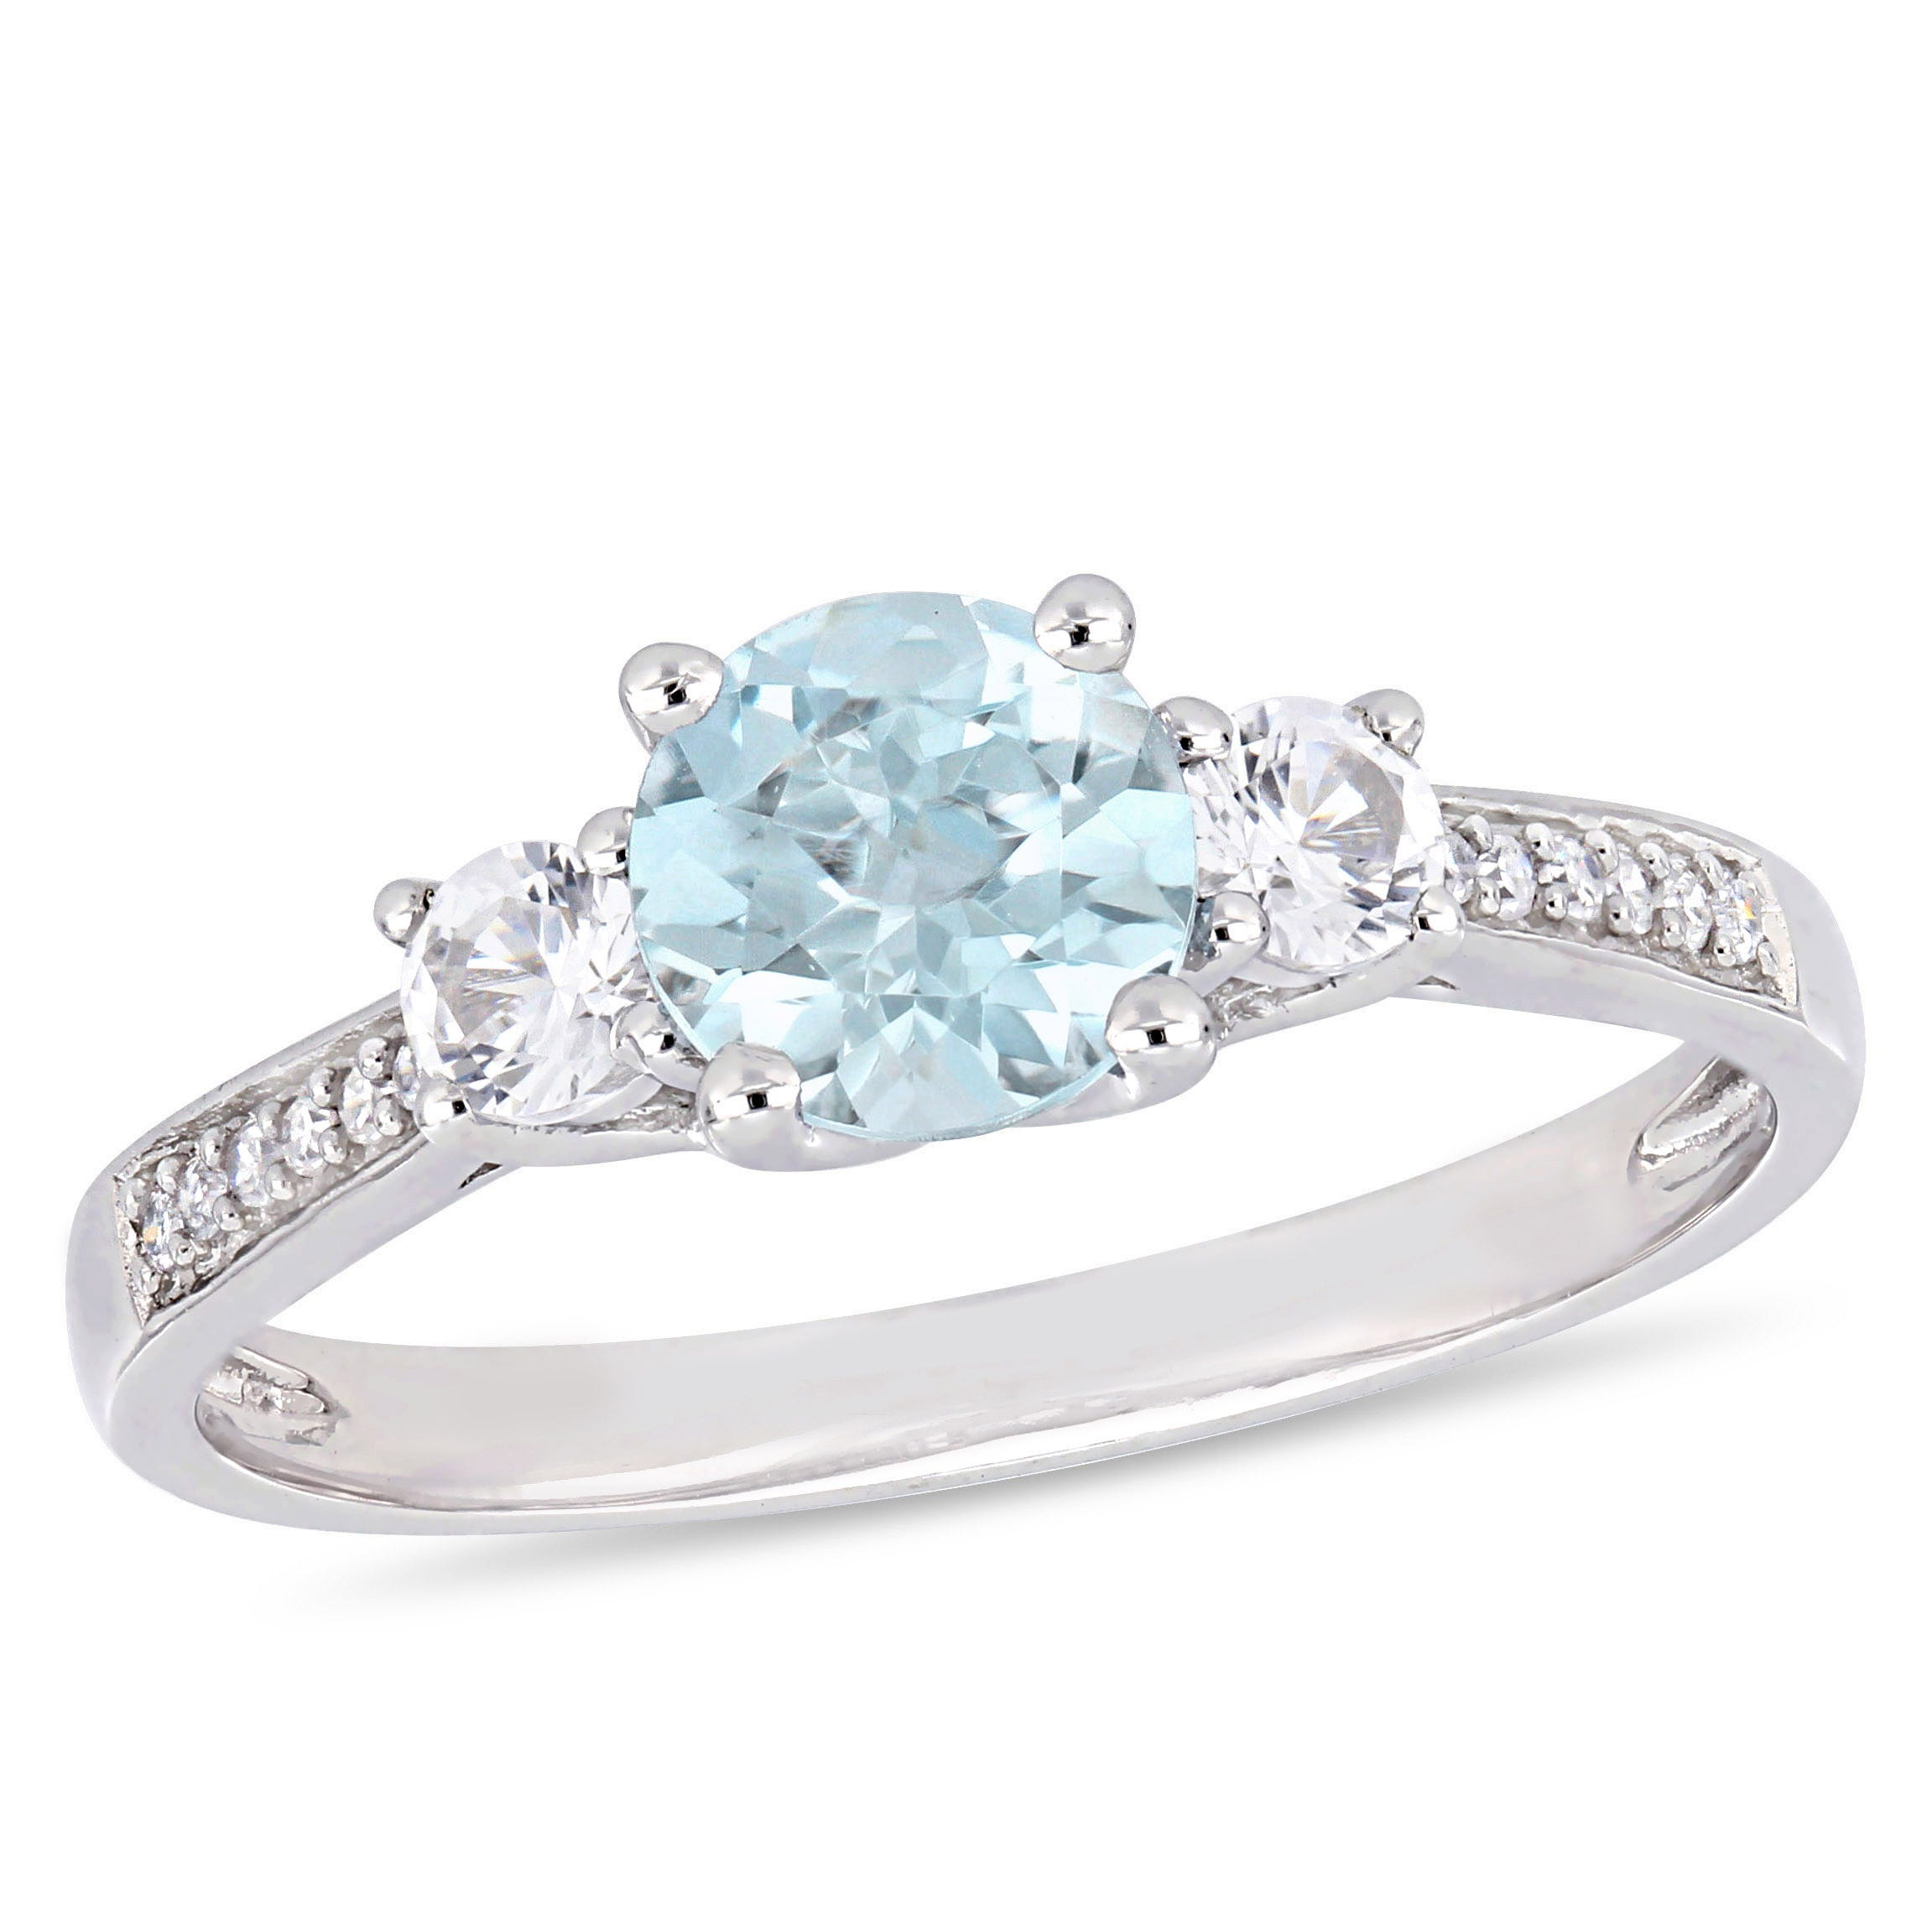 Three-Stone Aquamarine, White Sapphire & Diamond Engagement Ring in 10k White Gold